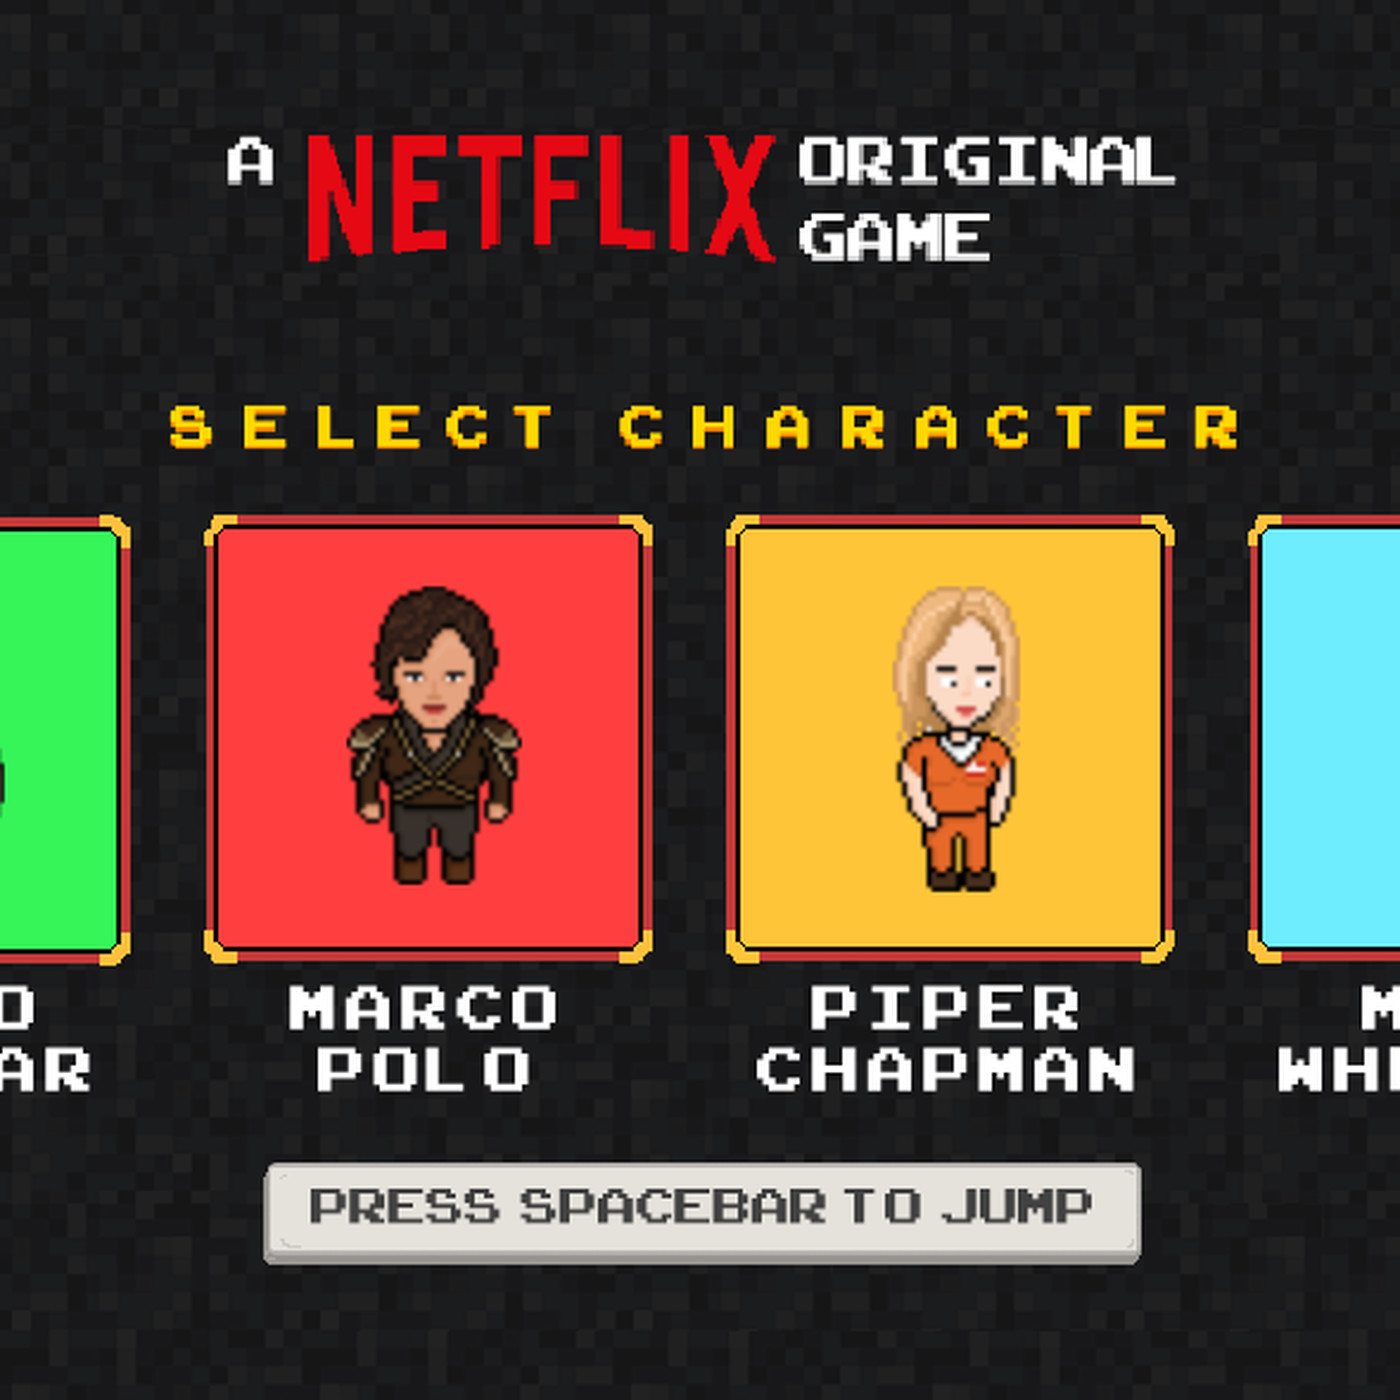 Netflix has made a side-scrolling game based on its original